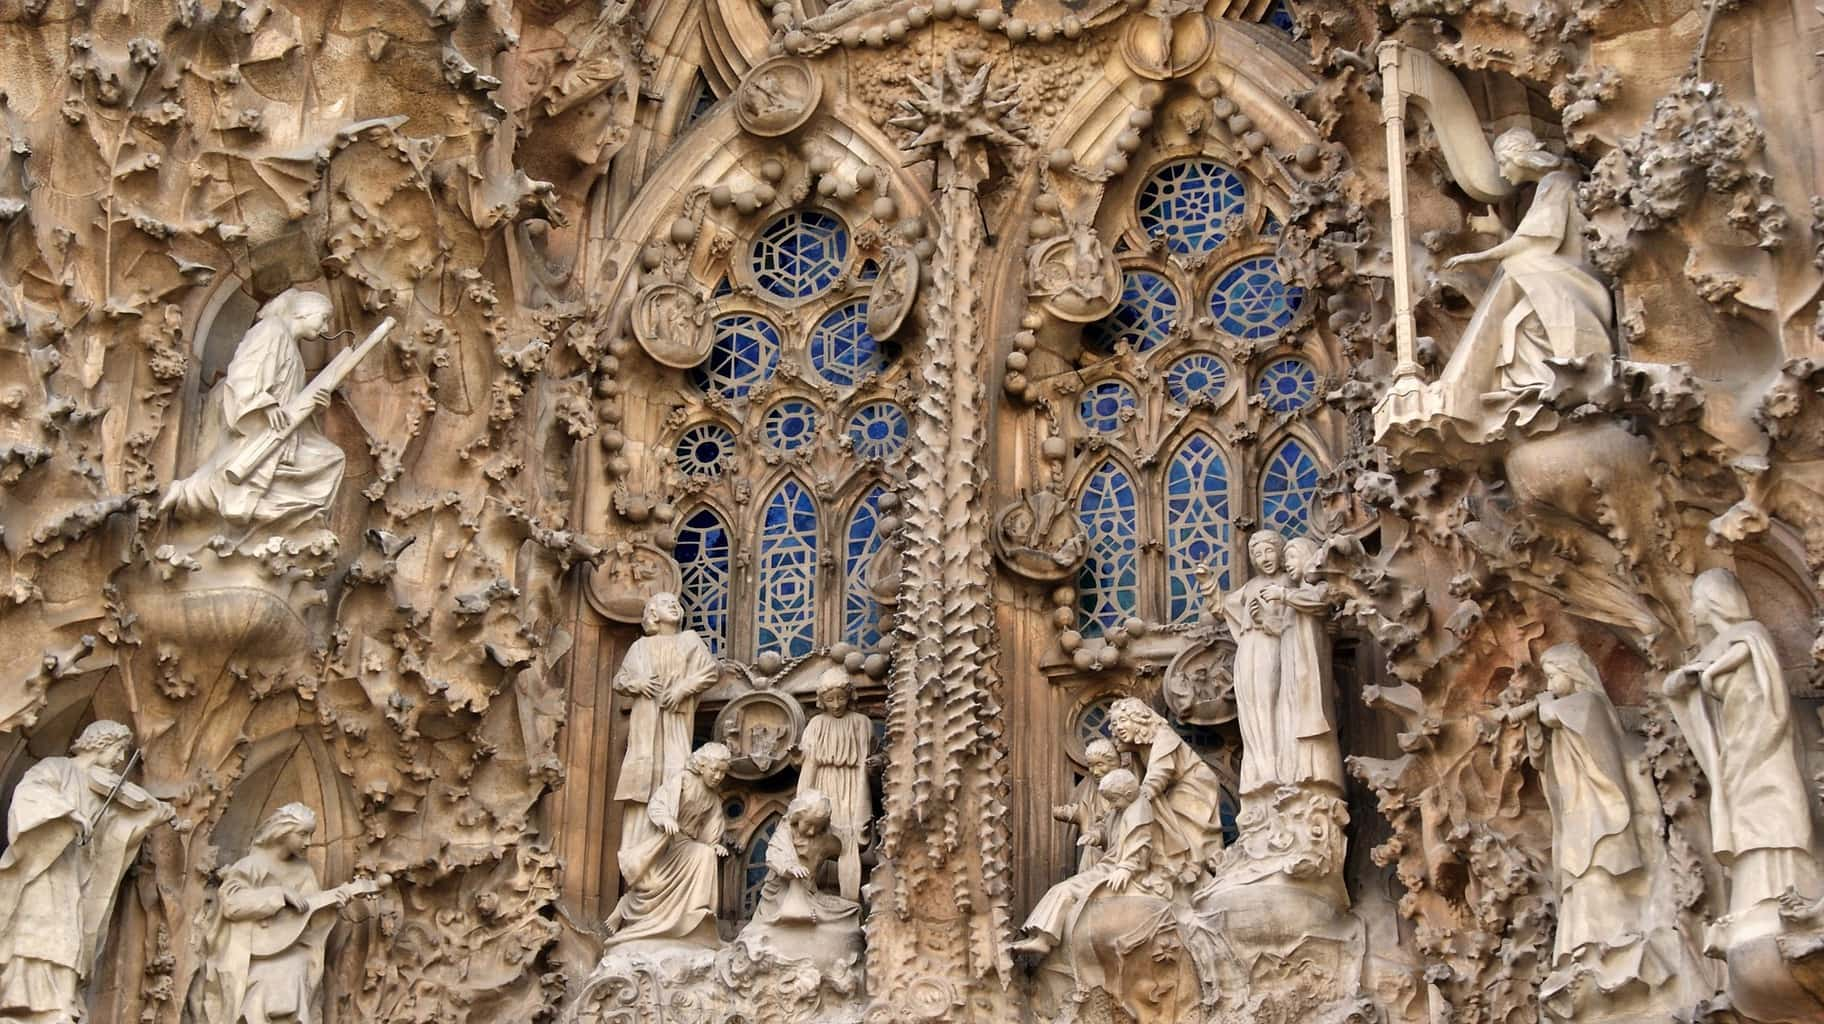 Passion facade at Sagrada Familia